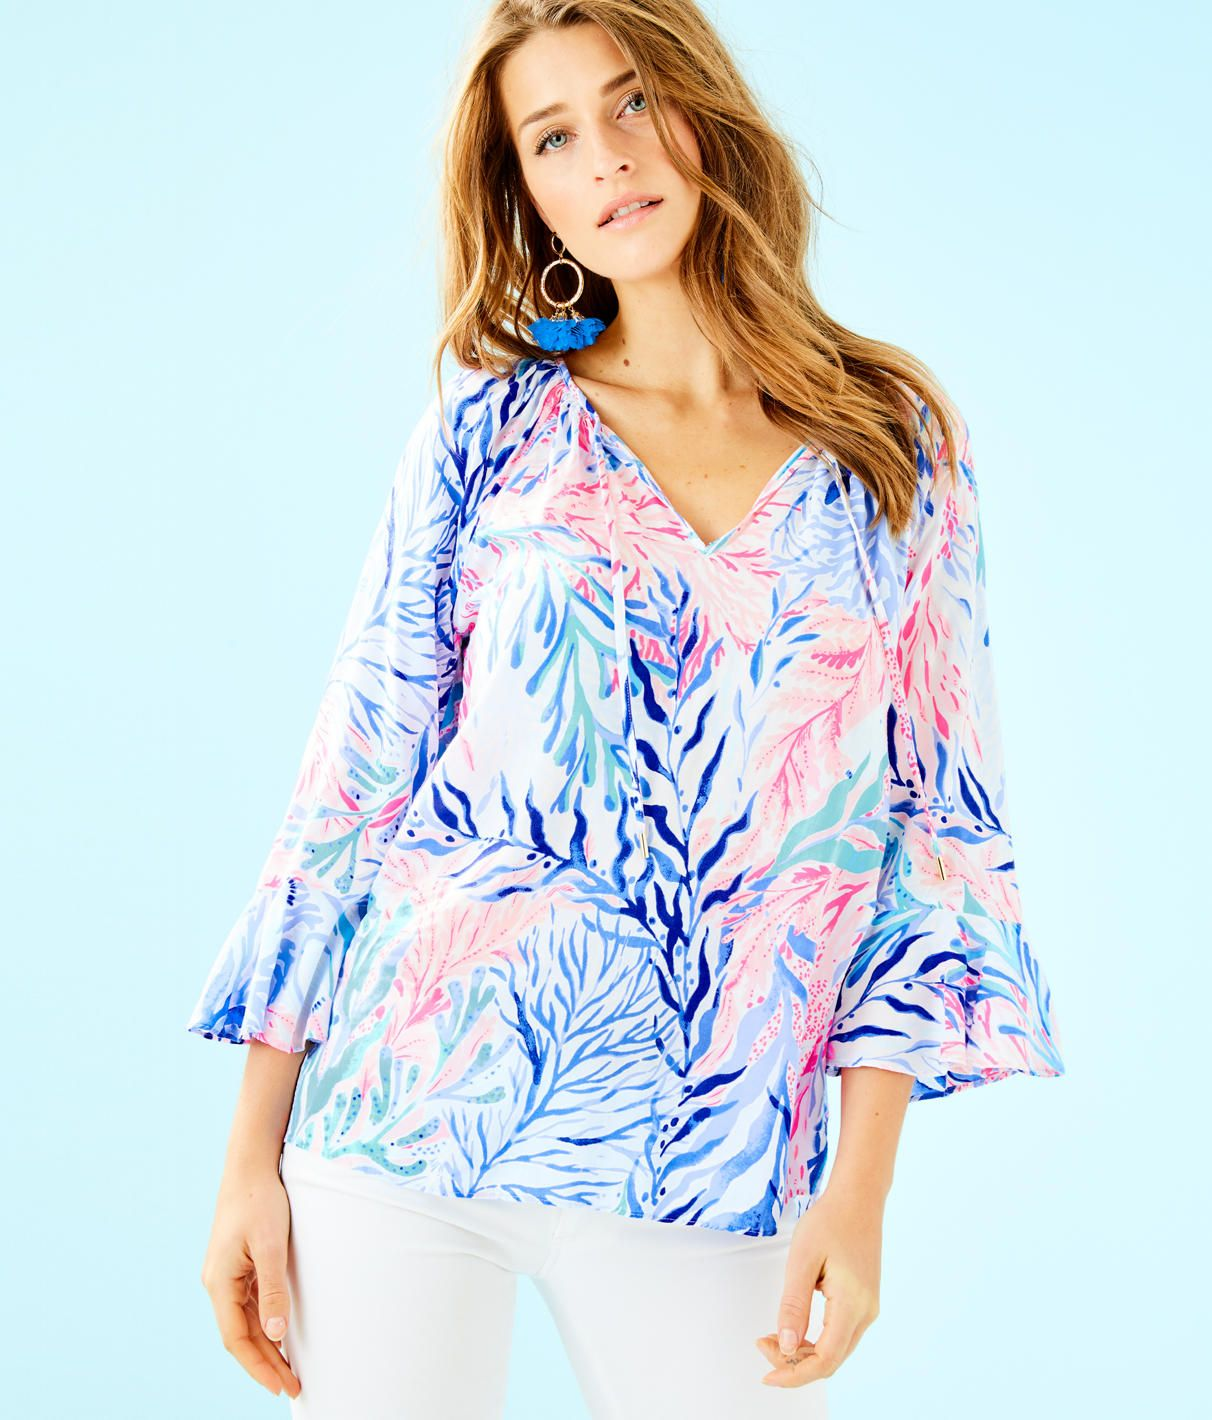 f30a321db3e108 Lilly Pulitzer UPF 50+ Luxletic Frida Polo Top in 2019   Products   Mens  tops, Tops, Men casual